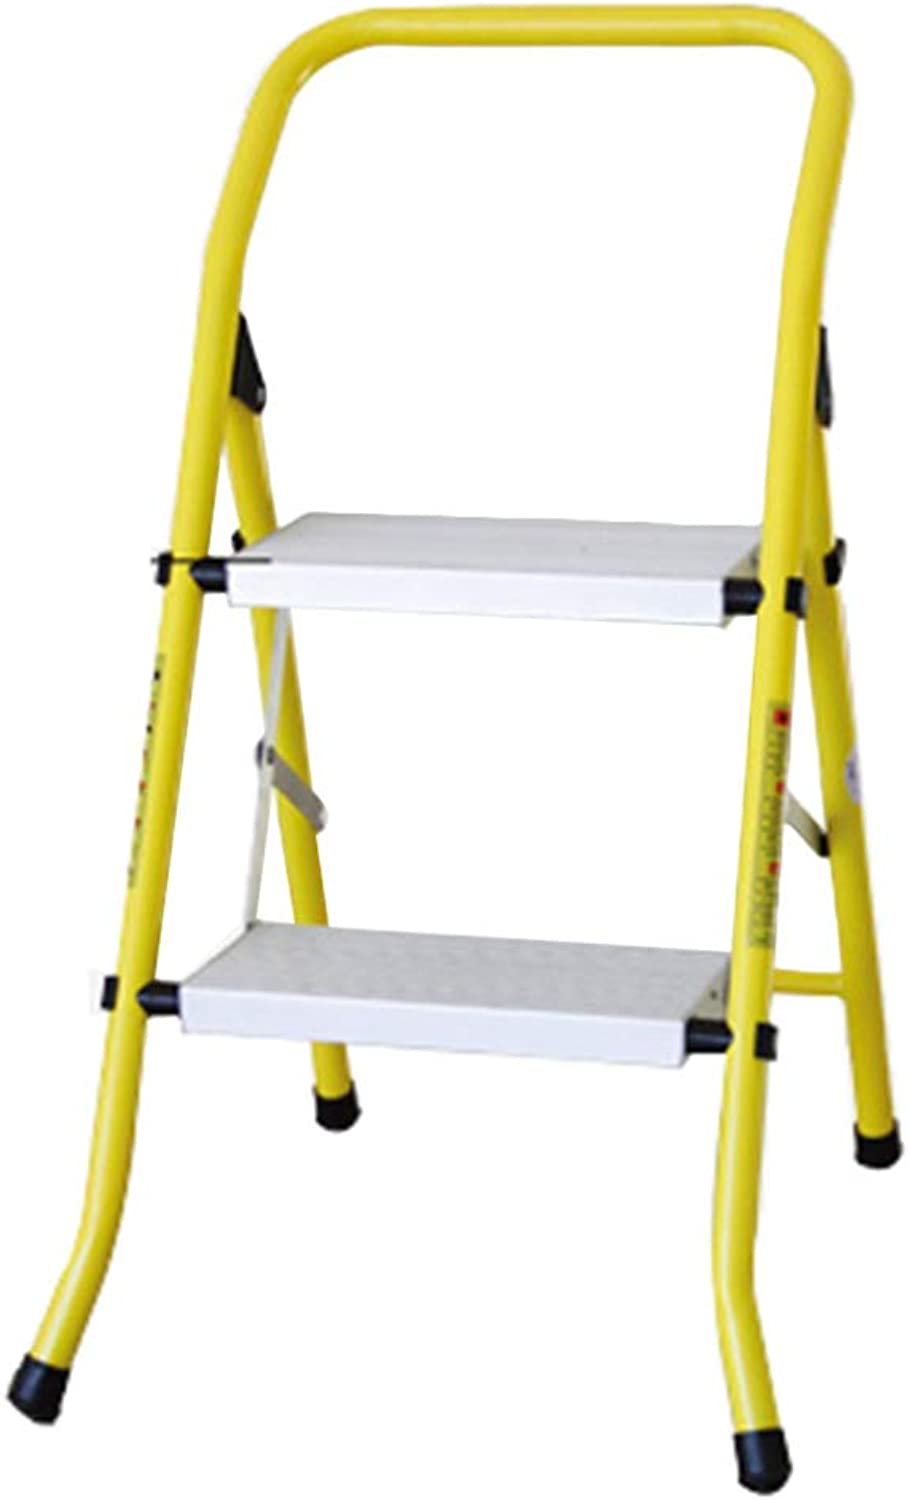 HAIPENG Step Stool Ladder Chair Aluminum Alloy 2 Steps Foldable Dual-Purpose Multi-Function Thick Portable Household, Yellow, 47x52x48cm